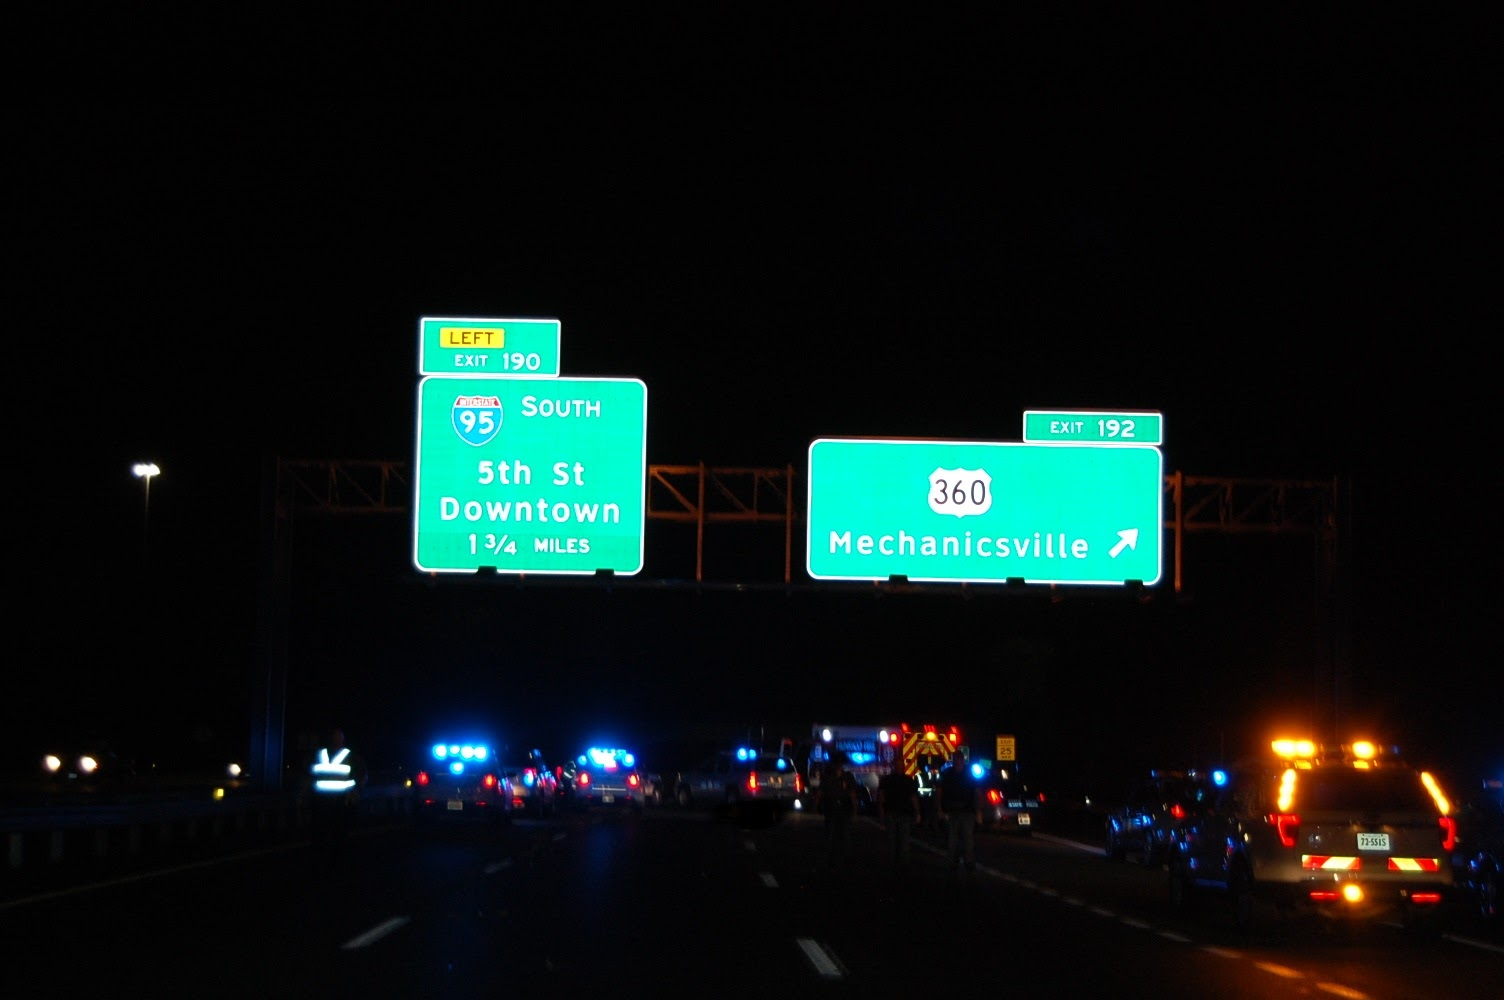 Afton Man Struck & Killed on I-64 in Henrico County